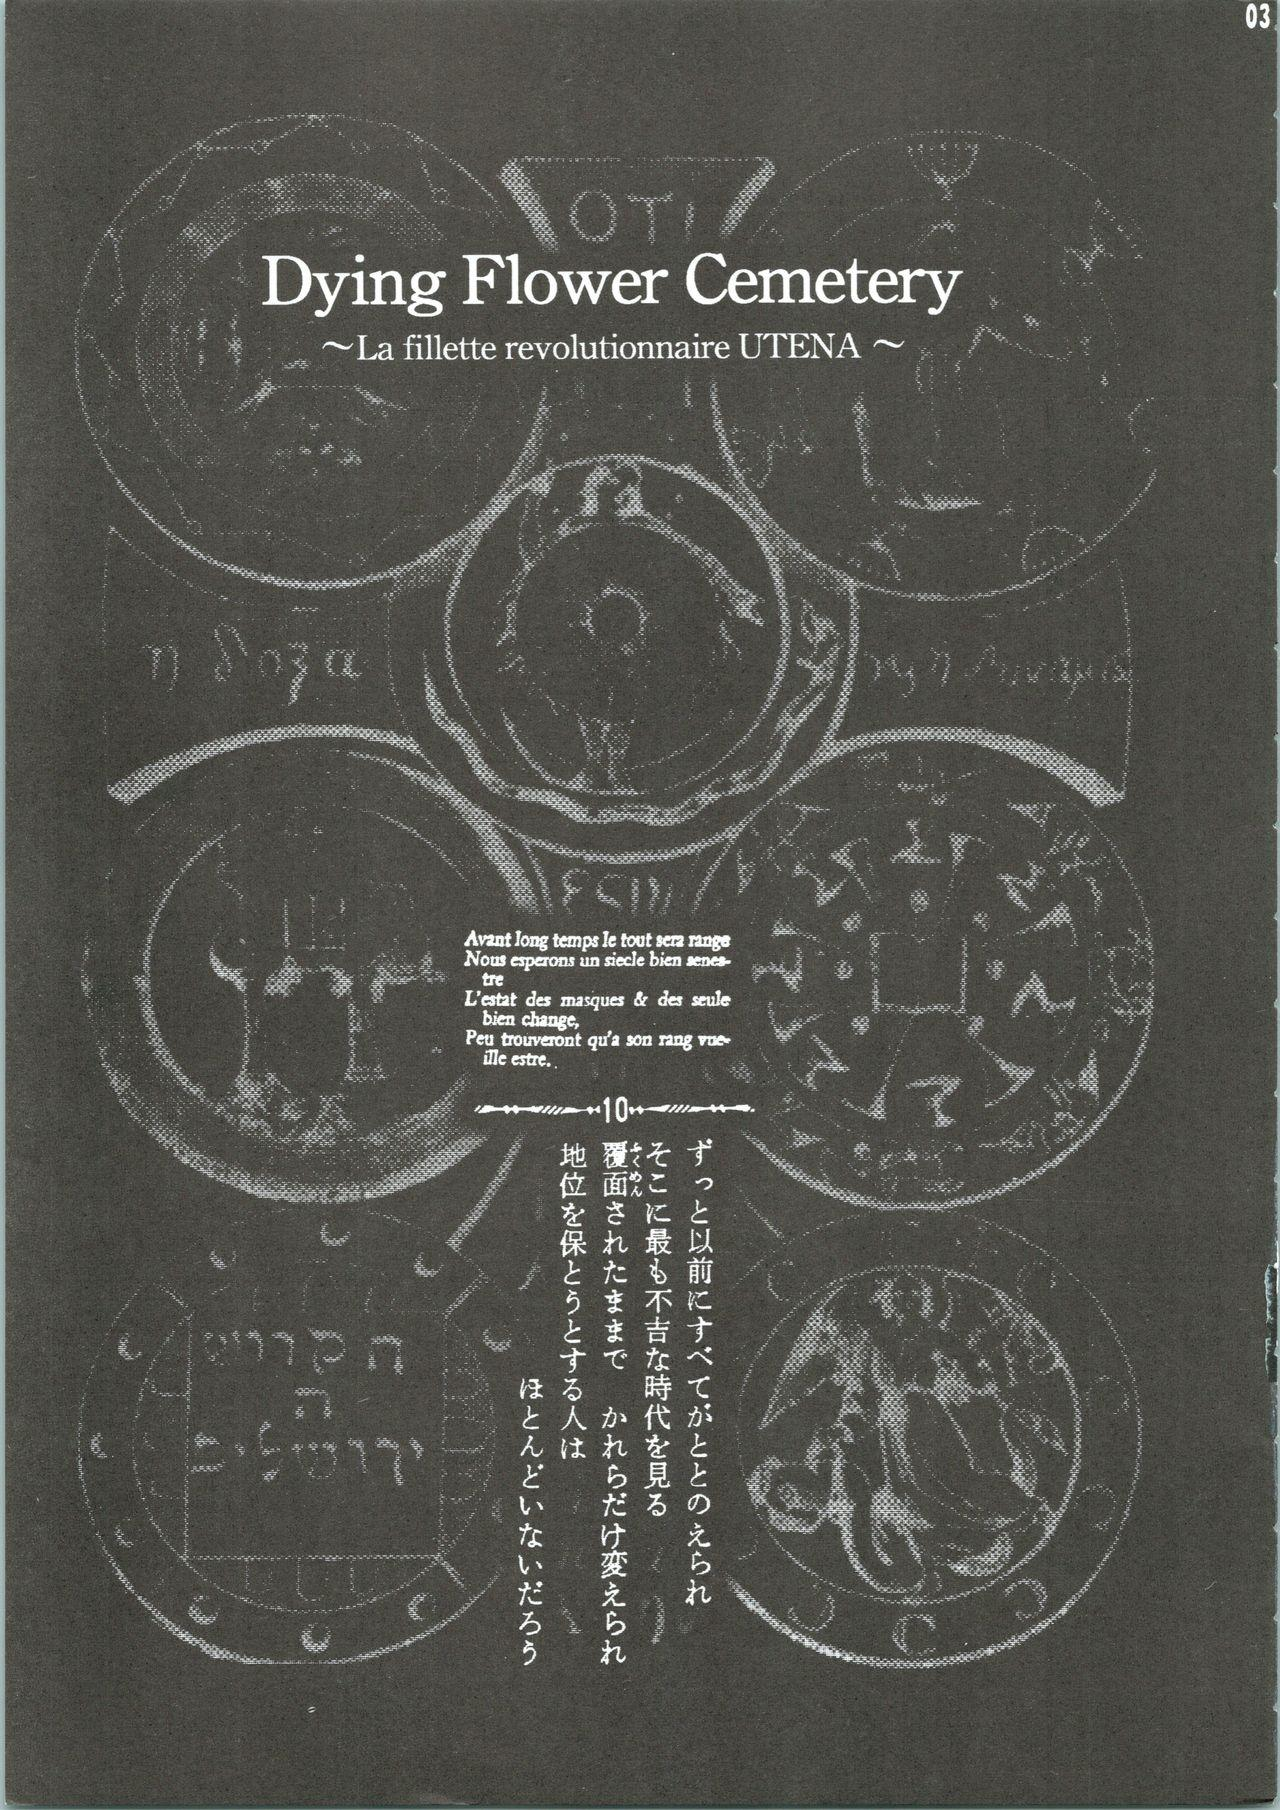 Dying Flower Cemetery 3